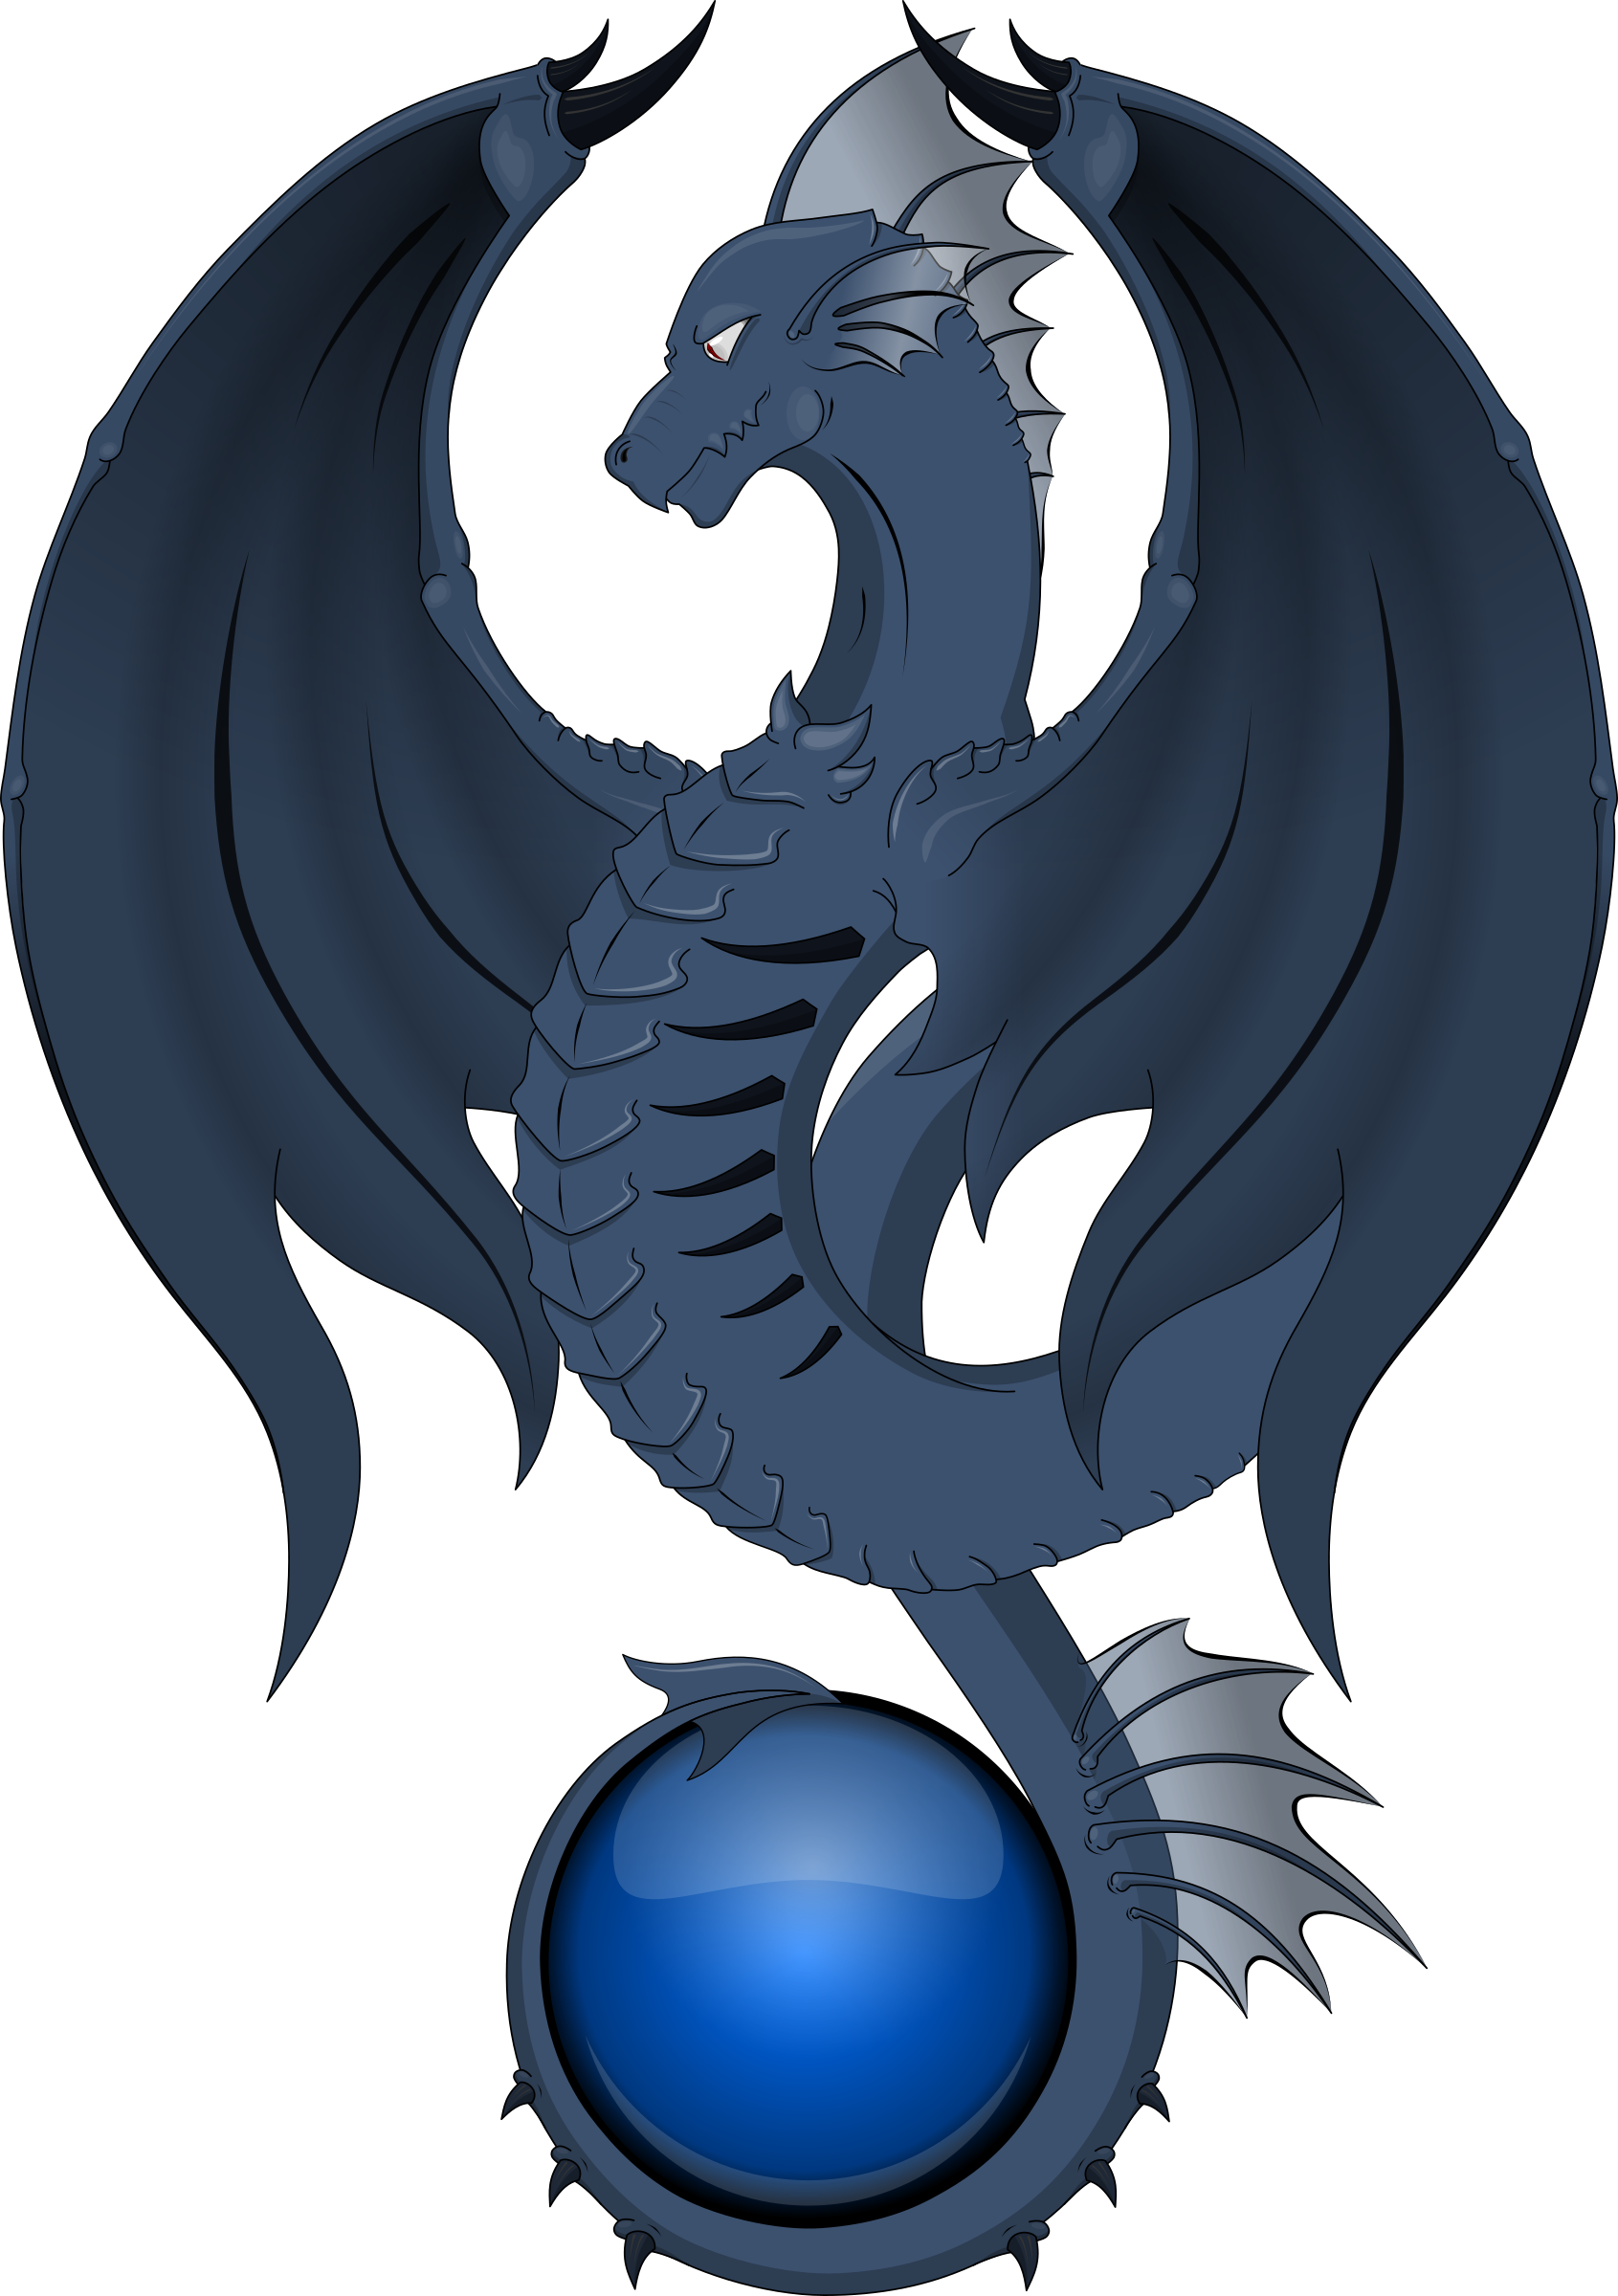 Dragon azul by deiby_ybied